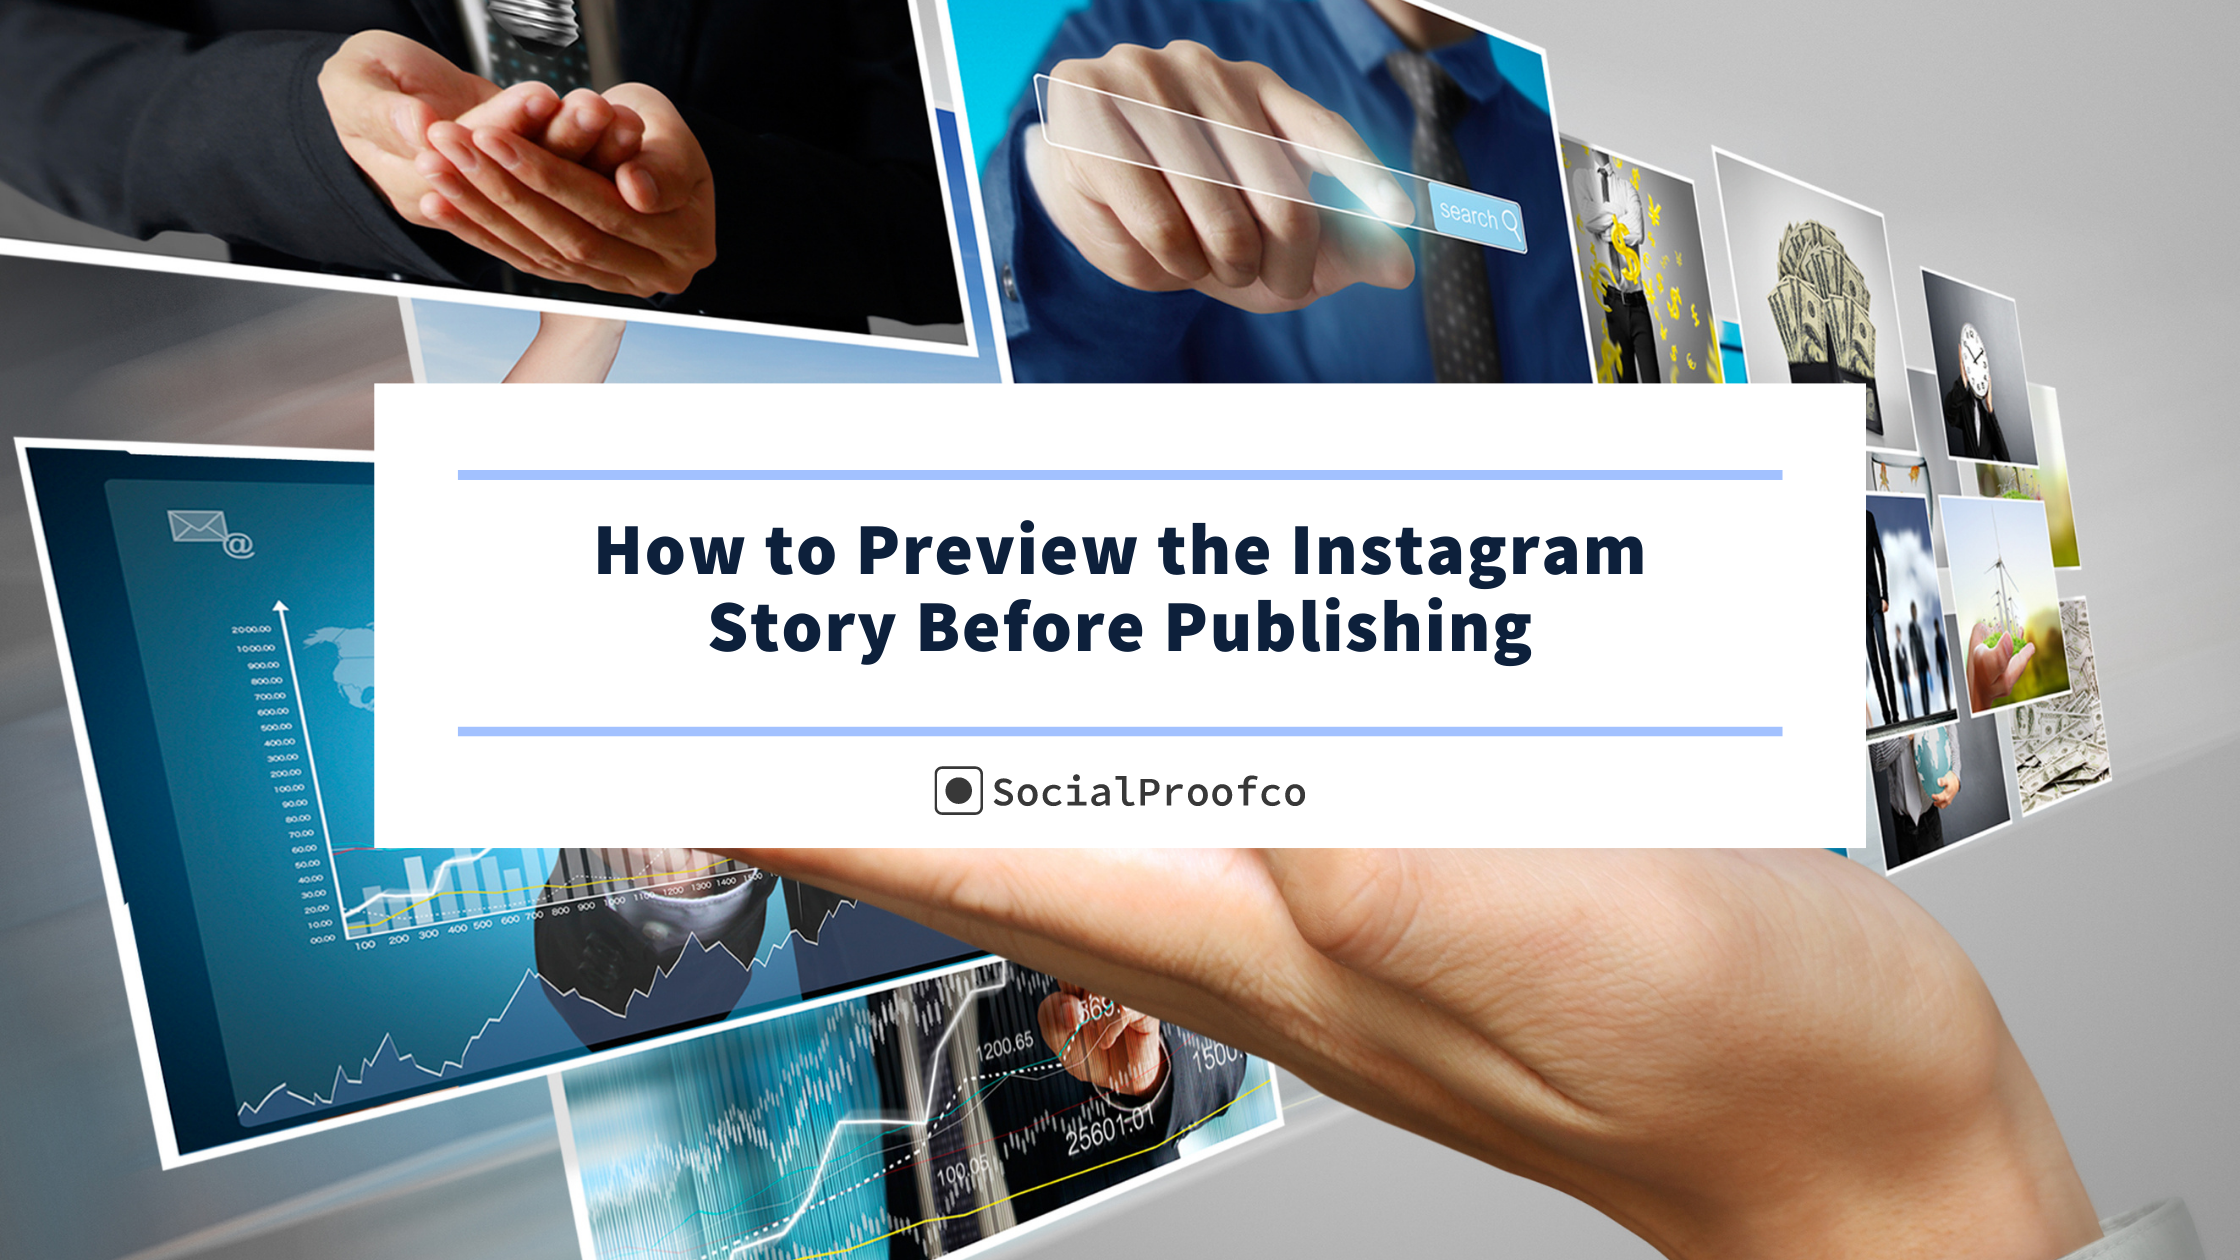 How to Preview the Instagram Story